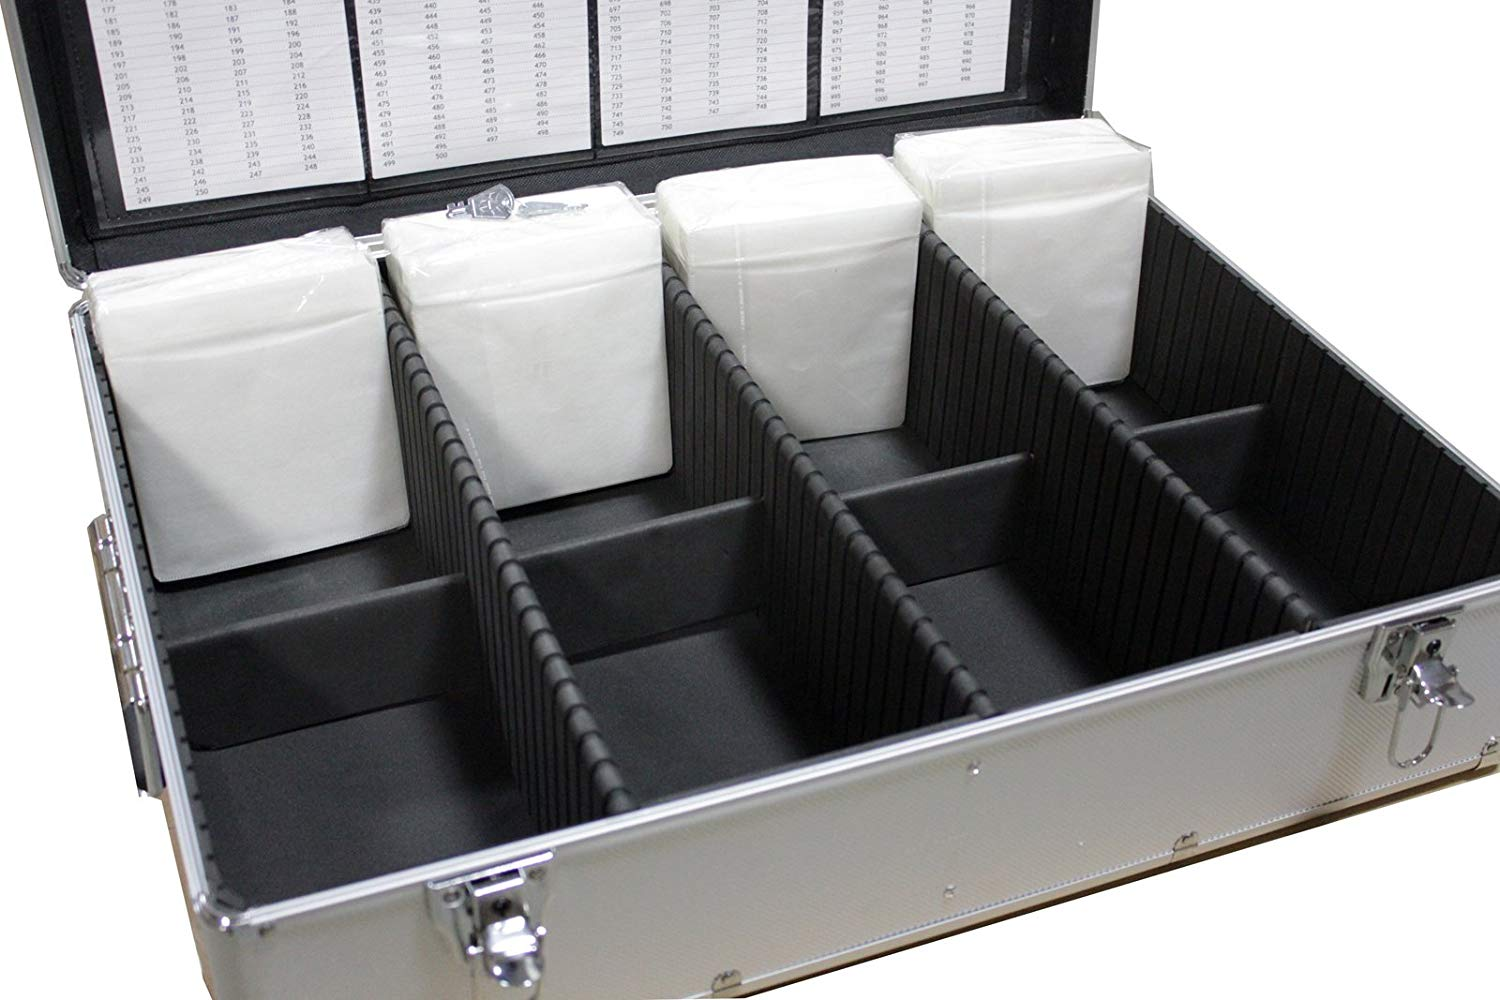 New Aluminum Like Cd Dvd Storage Case Mess Free Holds 1000 Discs Silver Box With Sleeves Without Hanger Megadisc Walmart Canada